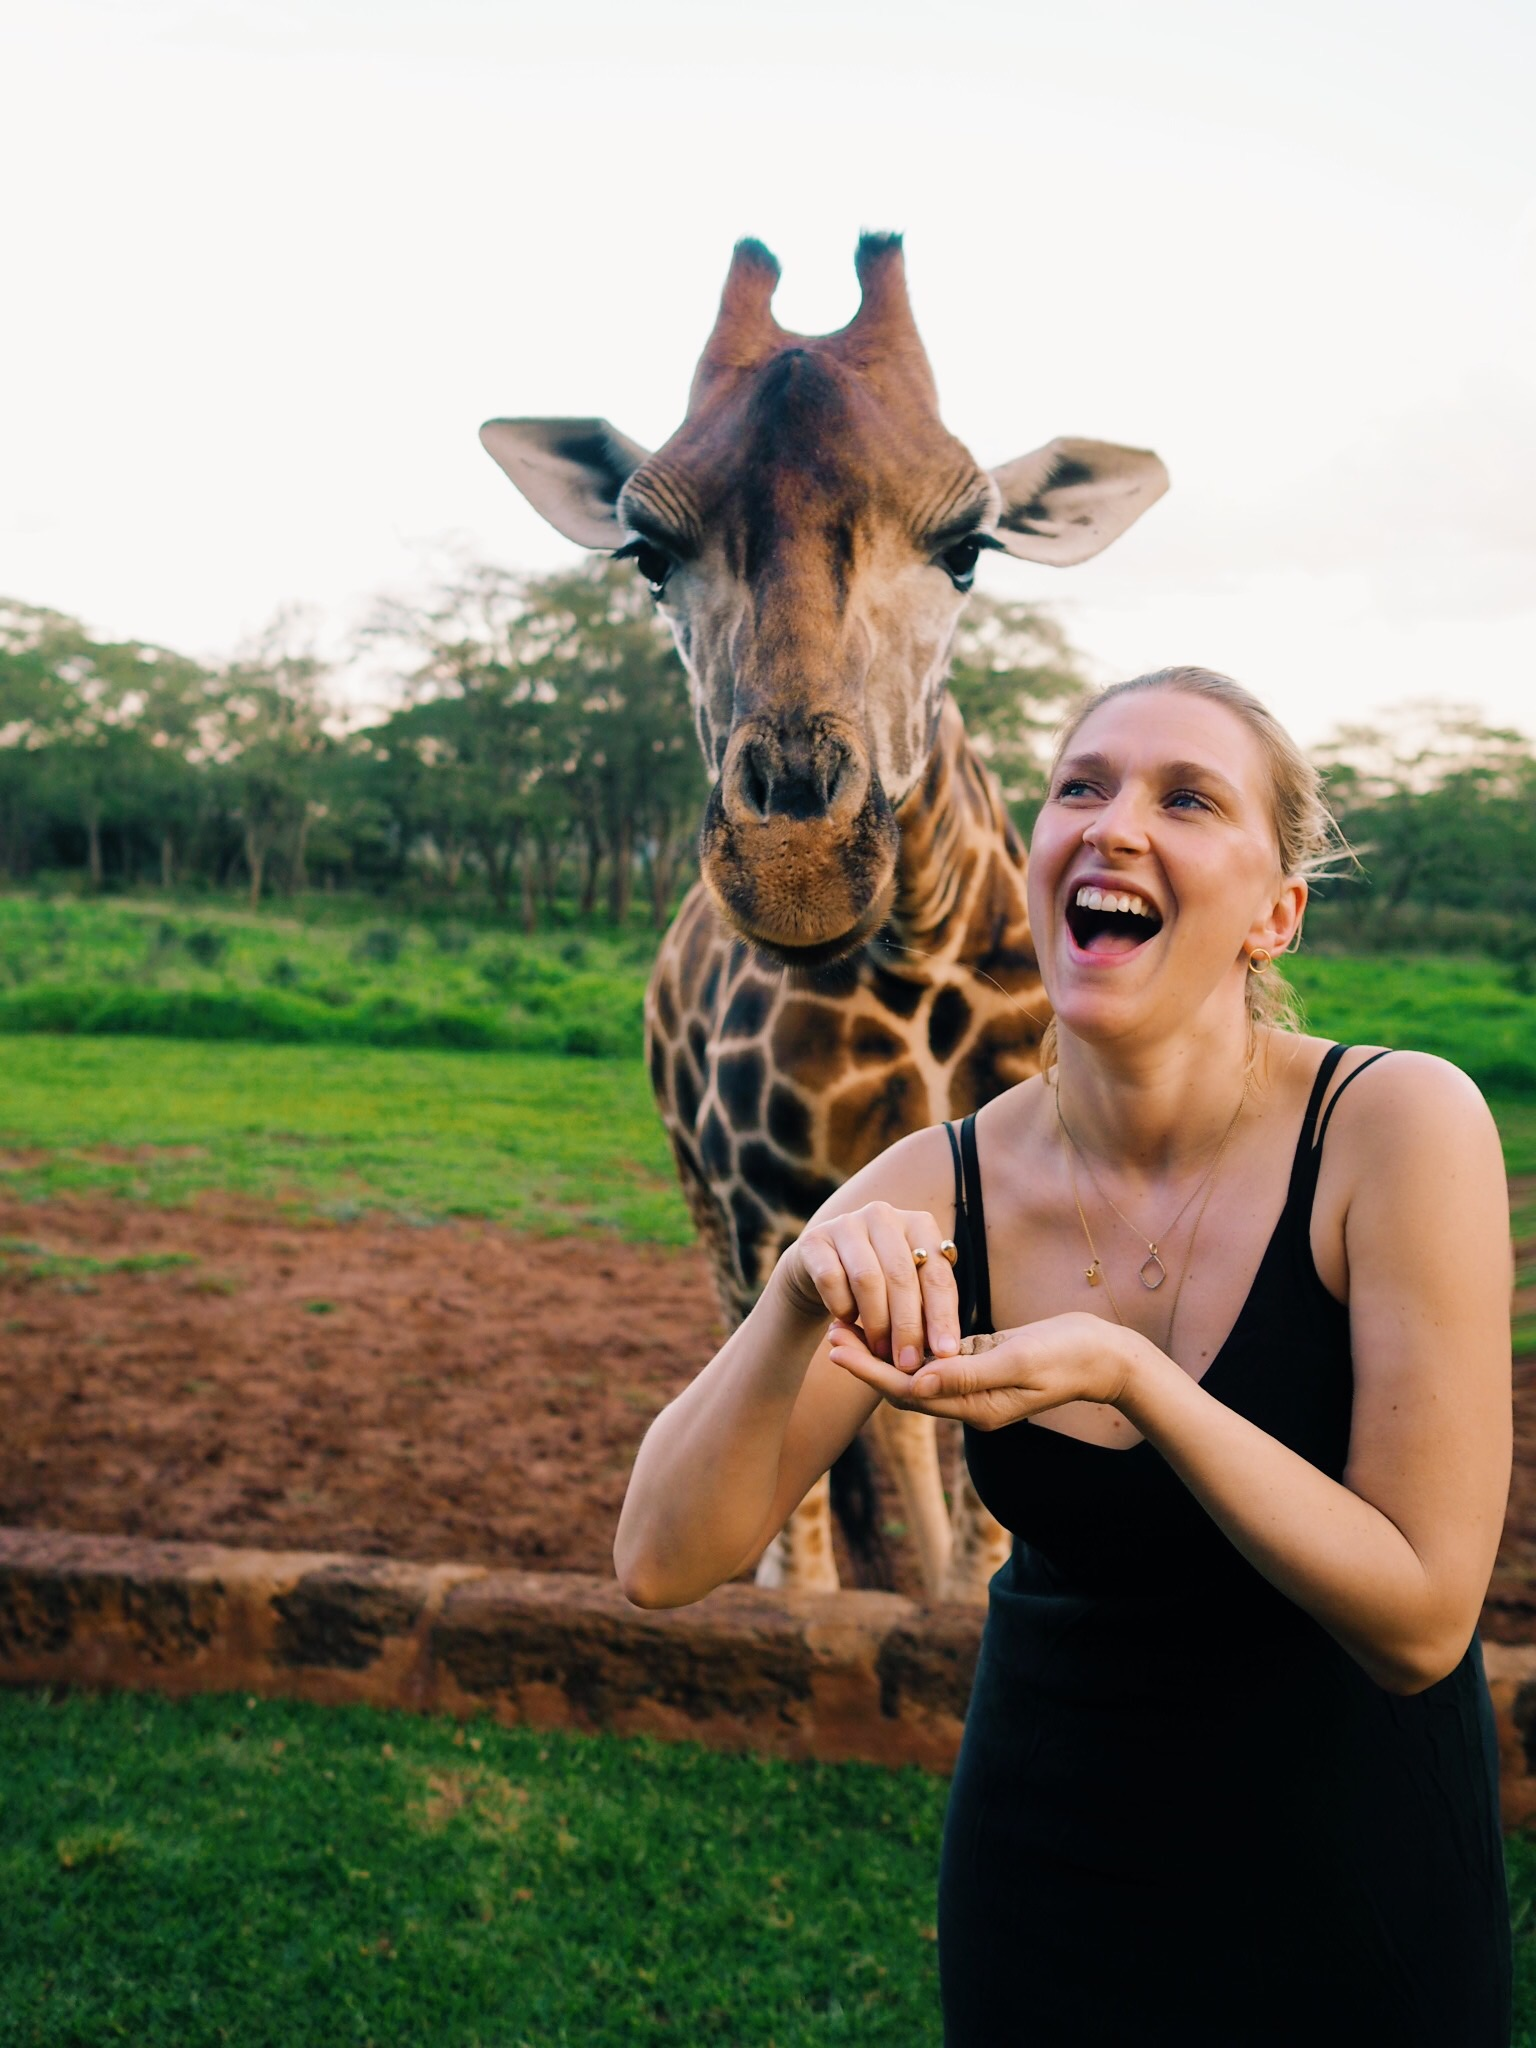 Having a giraffe